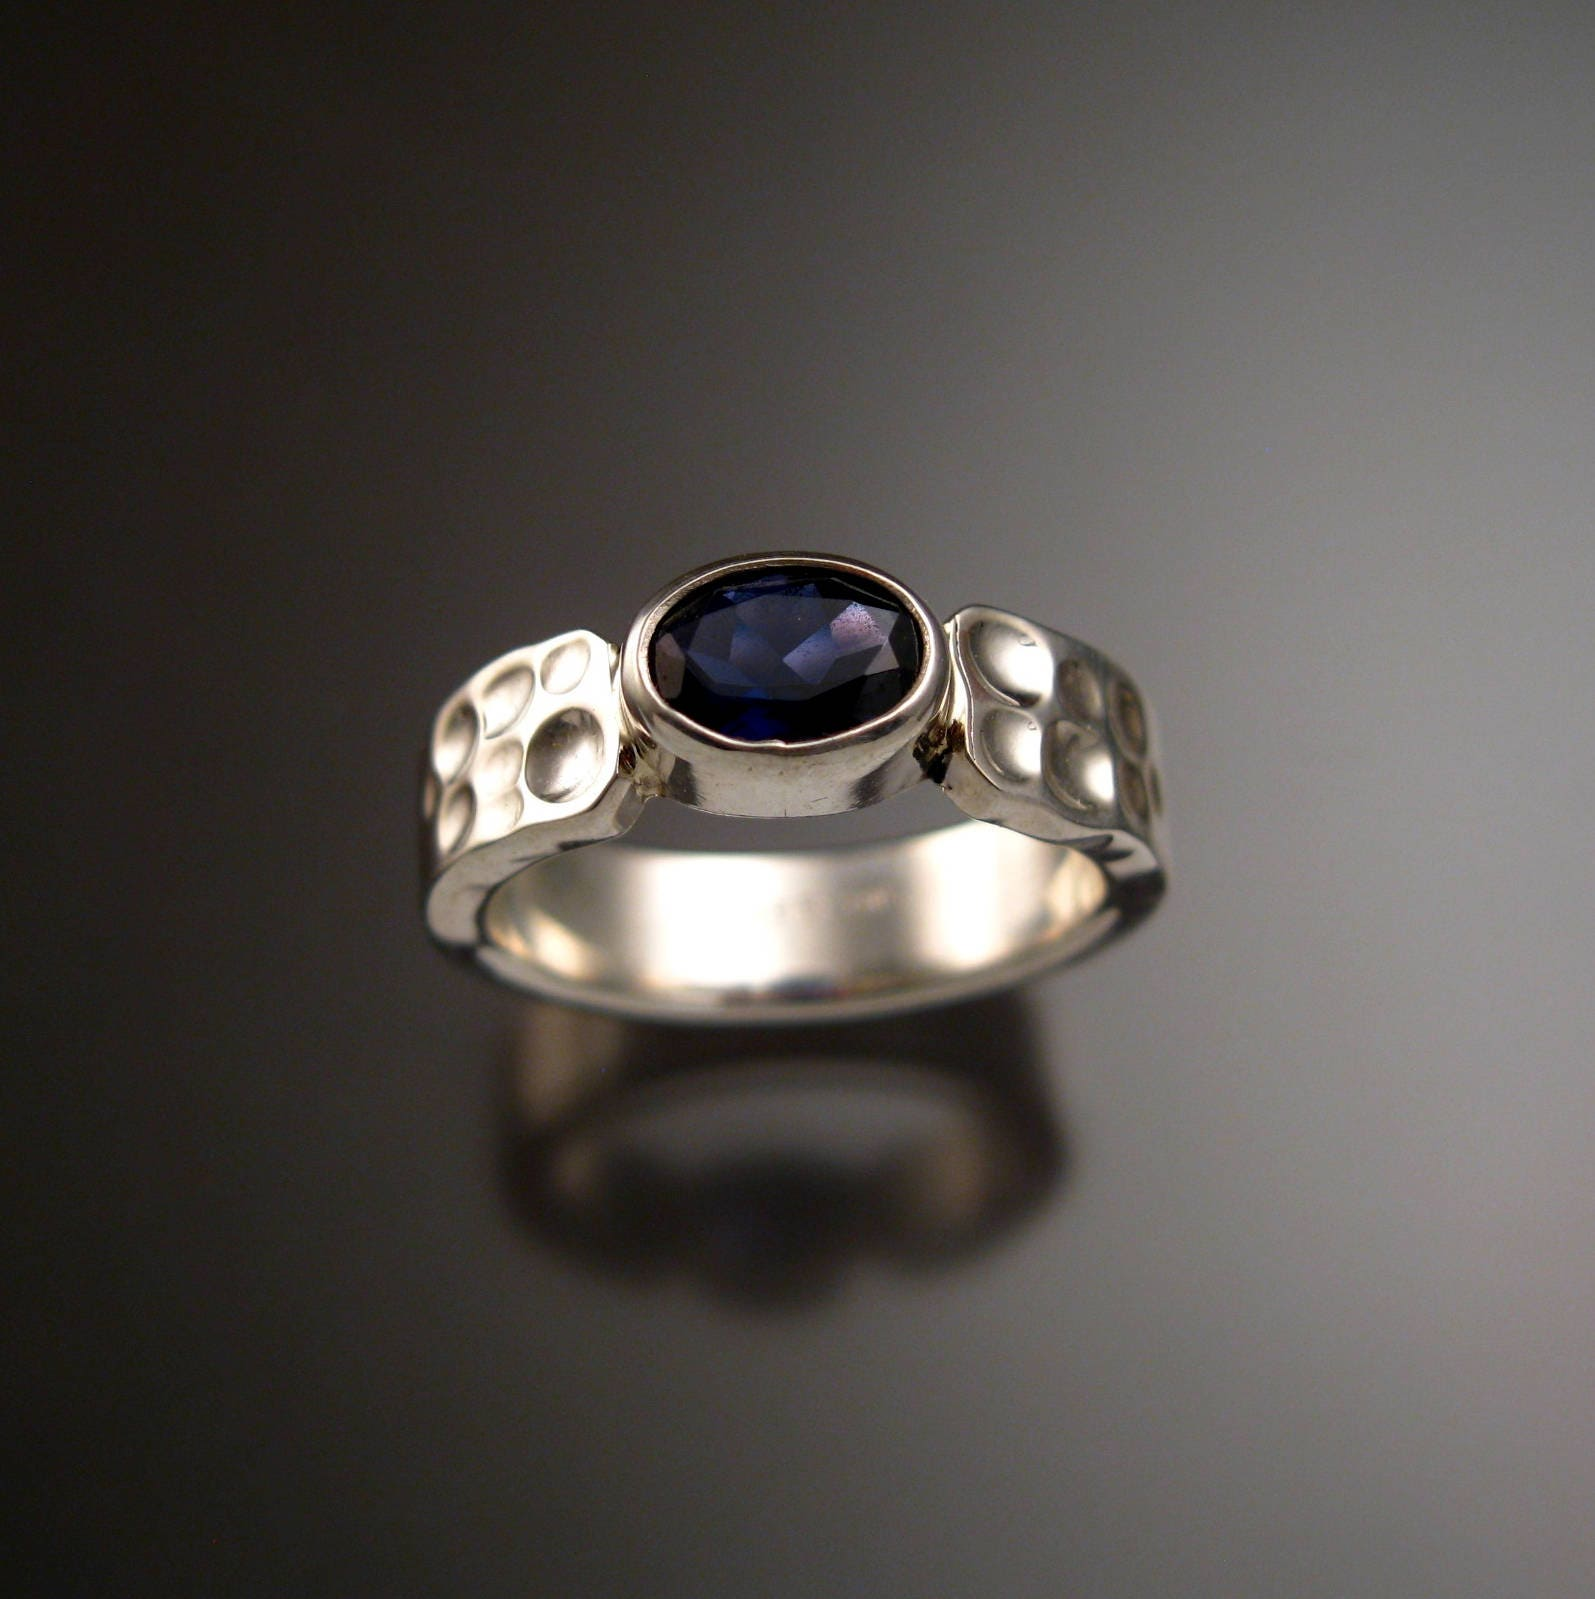 products skindandcoethicaljewelry blue montana s co sapphire deep engagement kind by ring